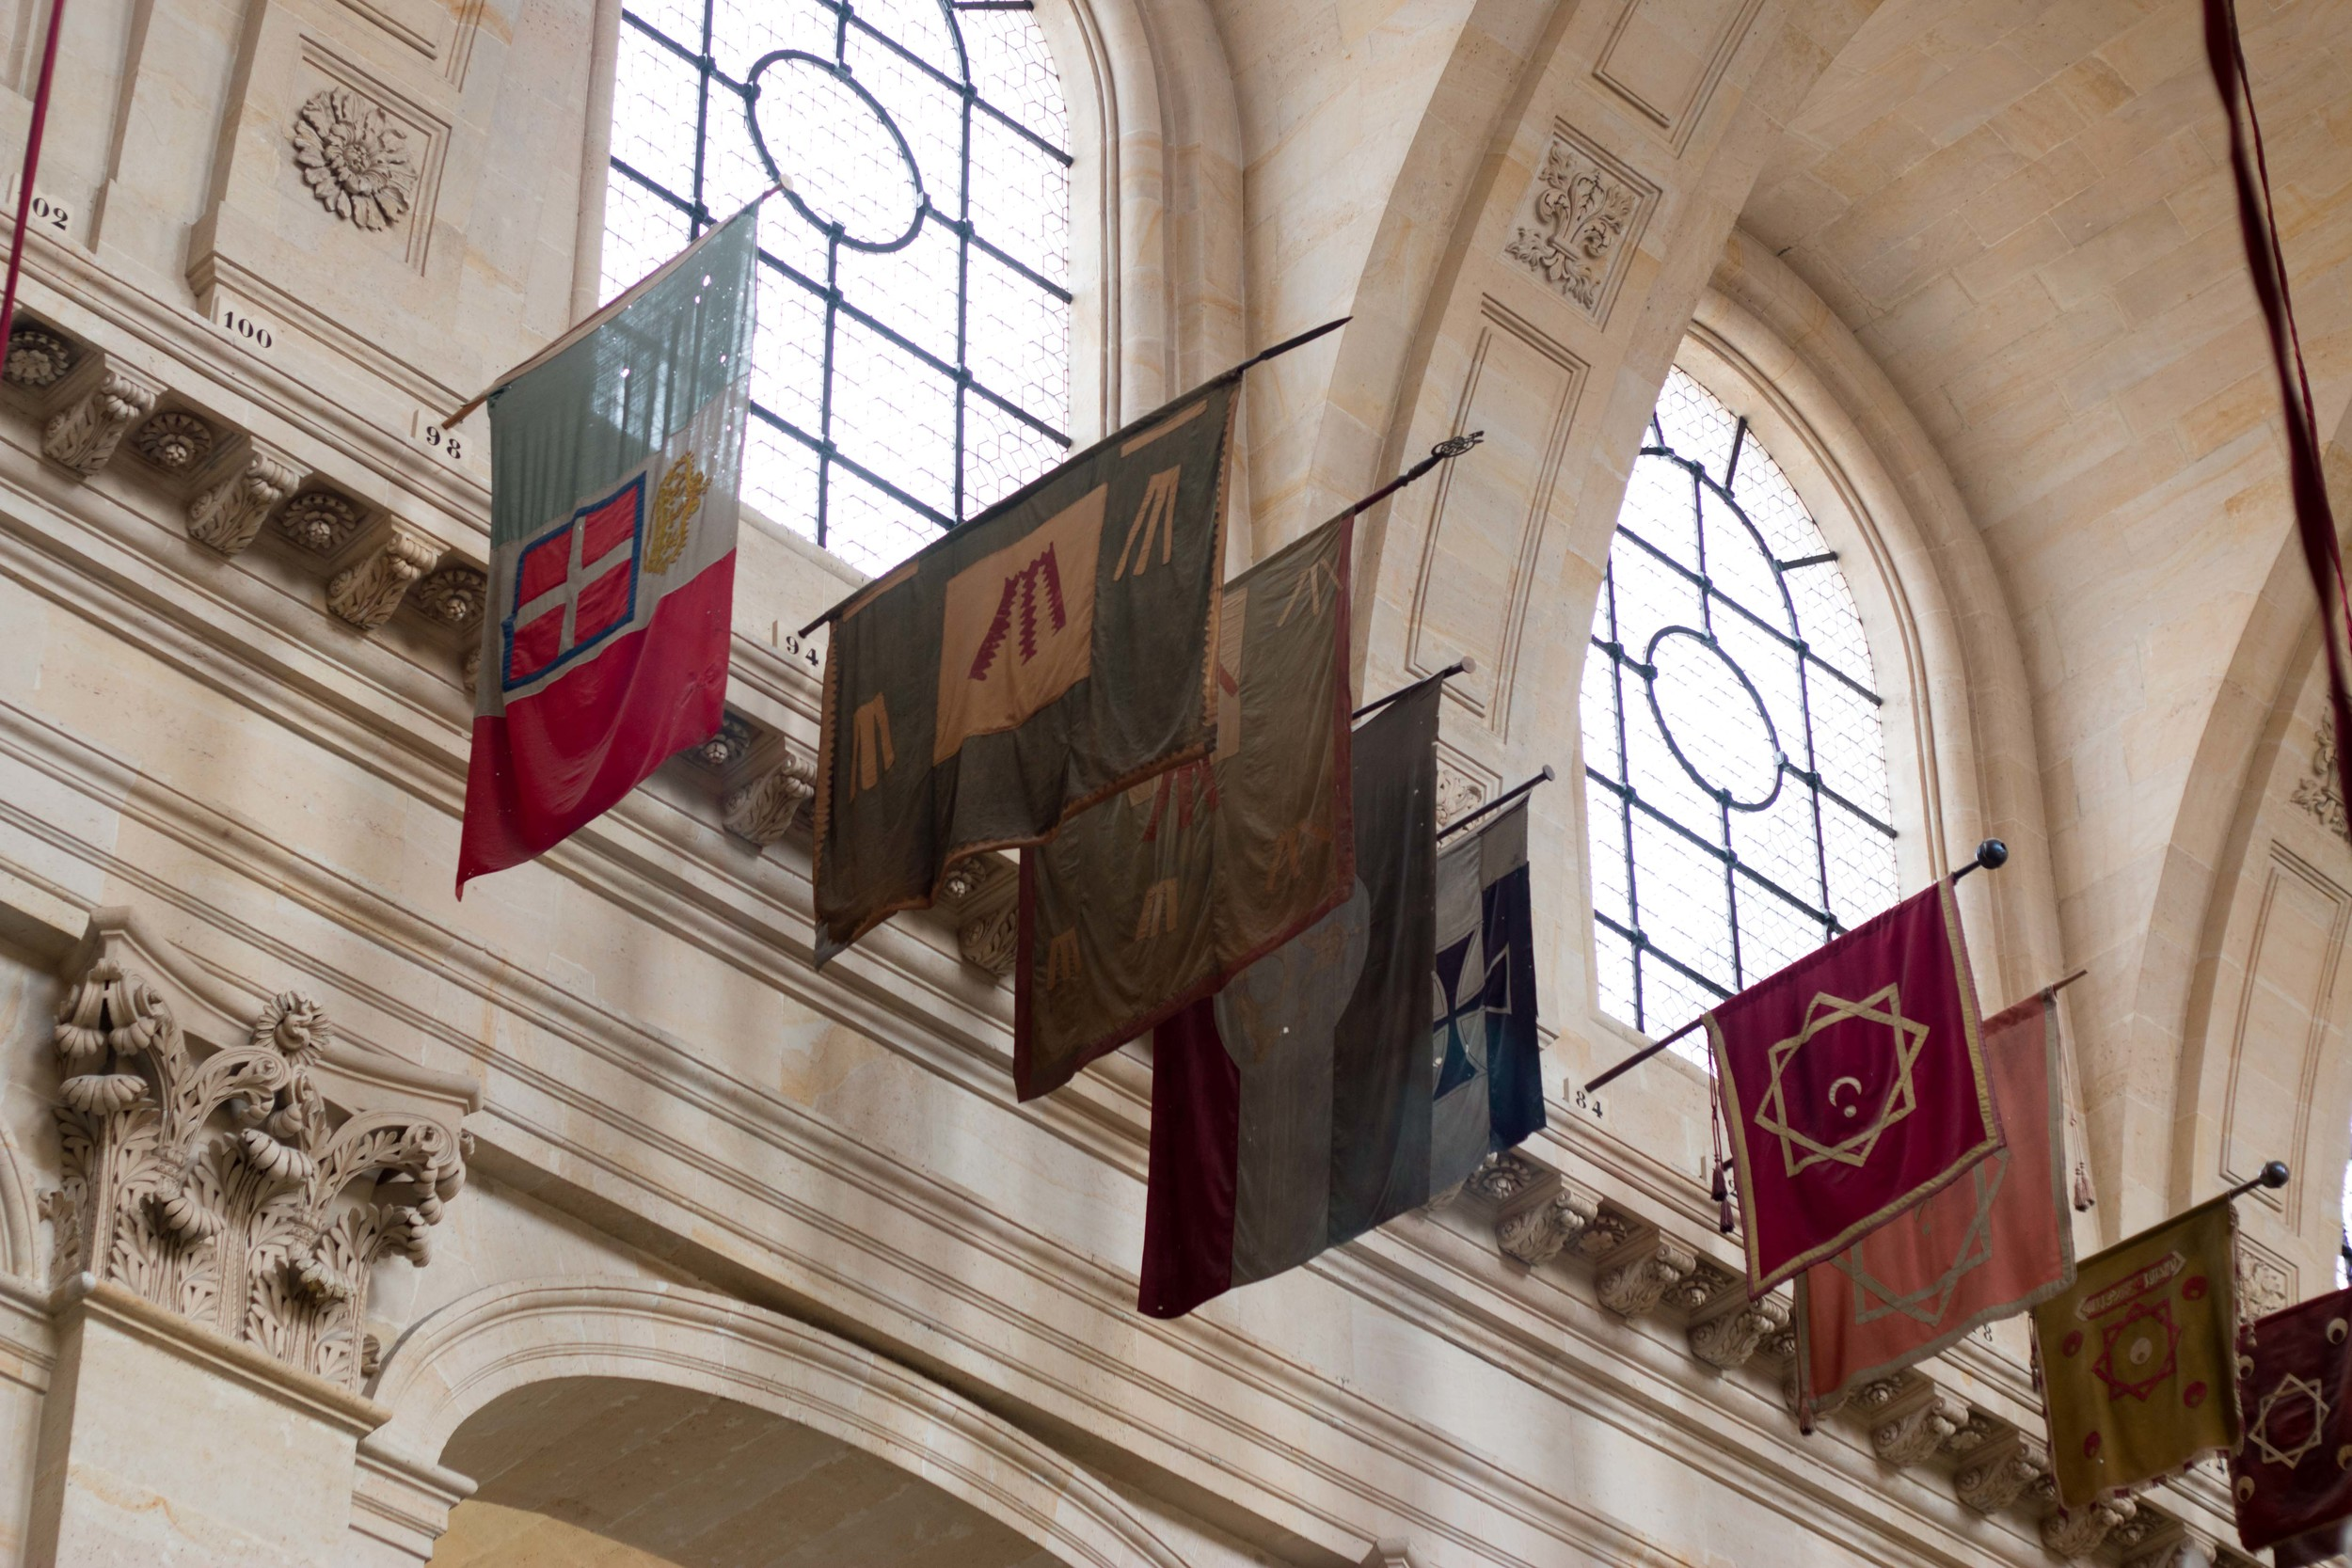 Various flags hanging in the church